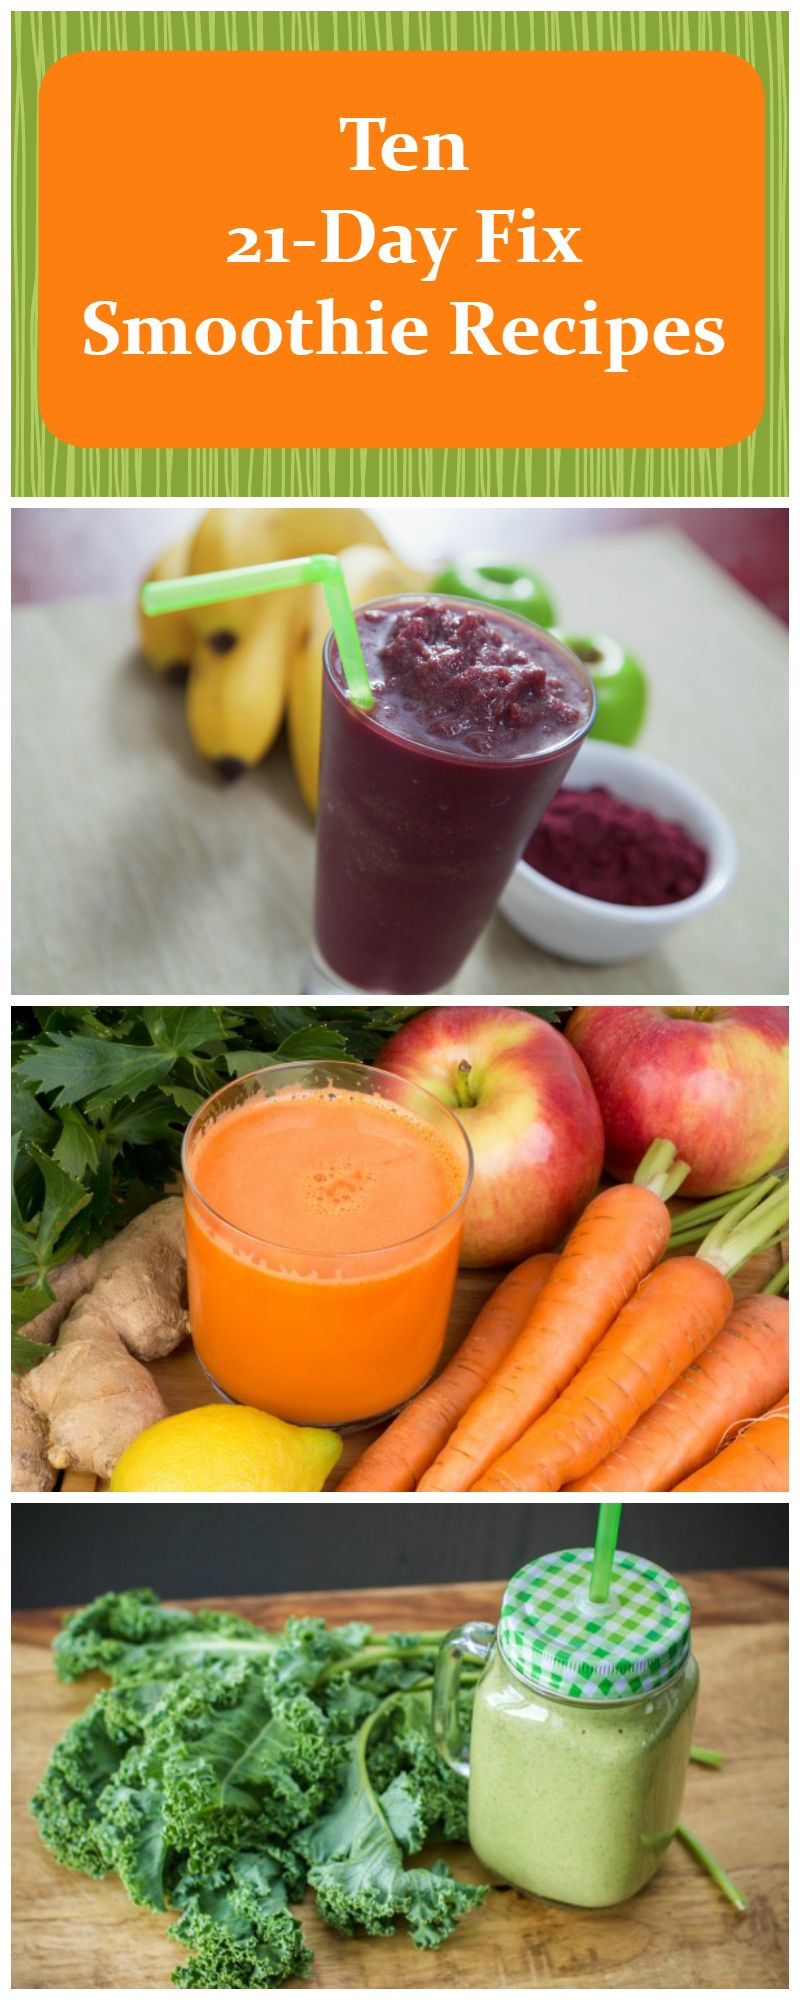 Ten smoothie recipes for the 21 Day Fix diet and instructions on how to put together your own 21 Day Fix smoothies with container sizes.